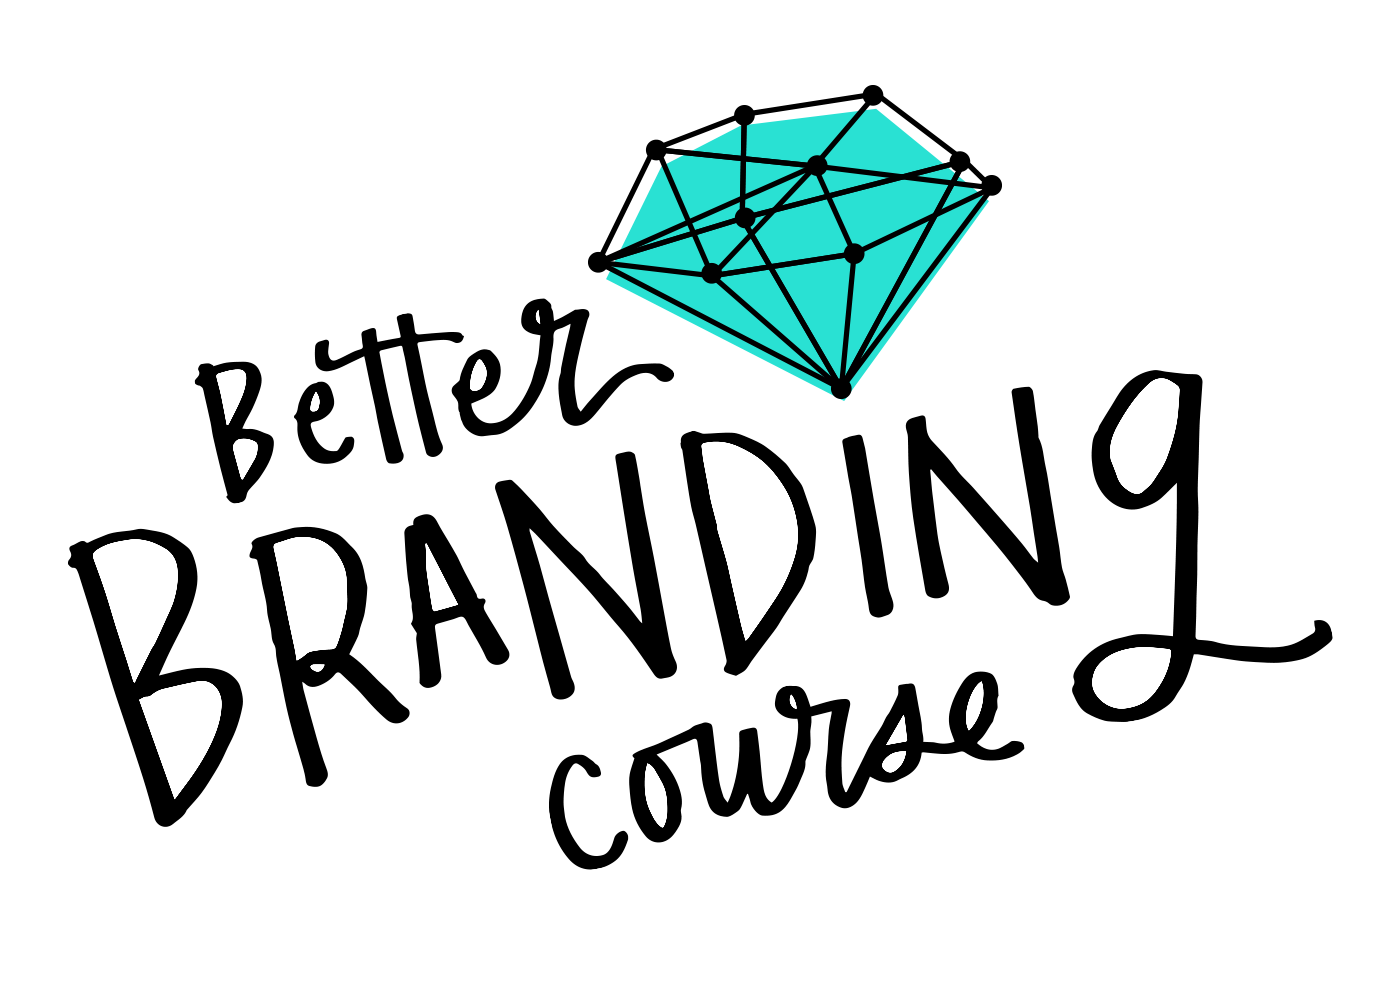 Caroline' Zook's Better Branding Course. A logo image, the title of the course is written in a swirly black handwriting with a black and turquoise illustration of a diamond on top